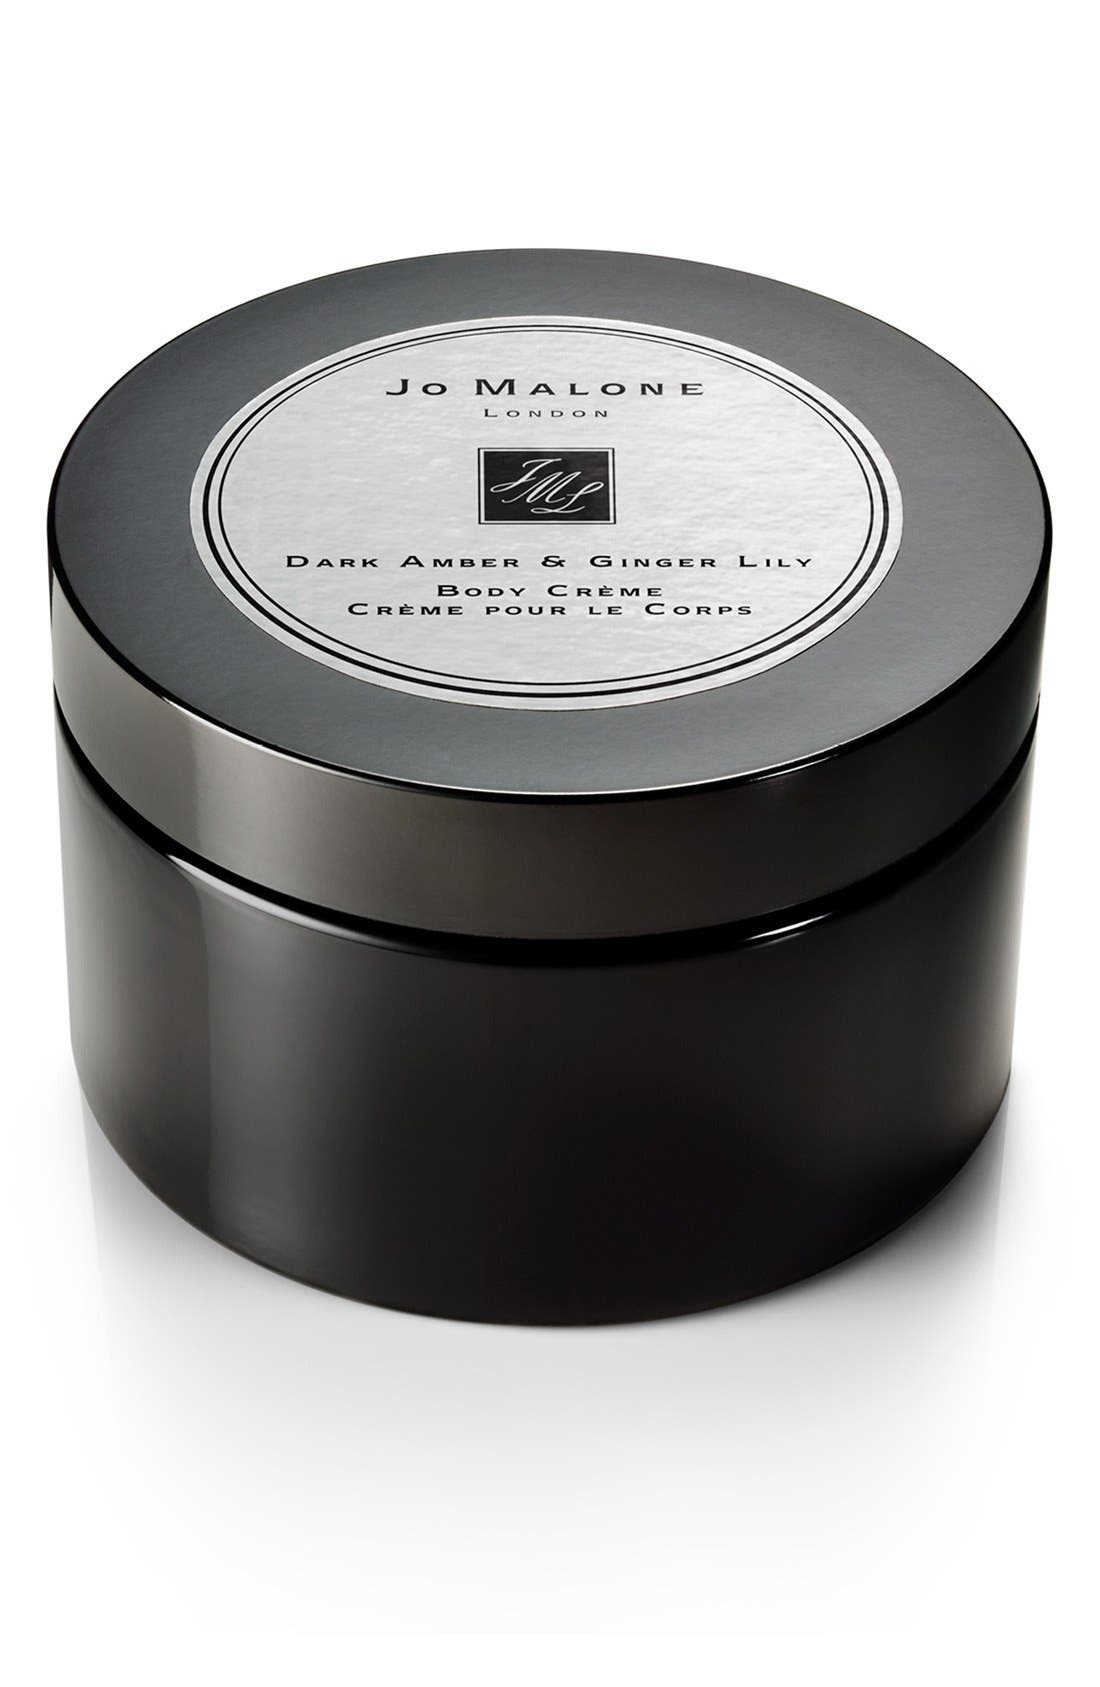 Jo Malone London™ Dark Amber & Ginger Lily Body Crème